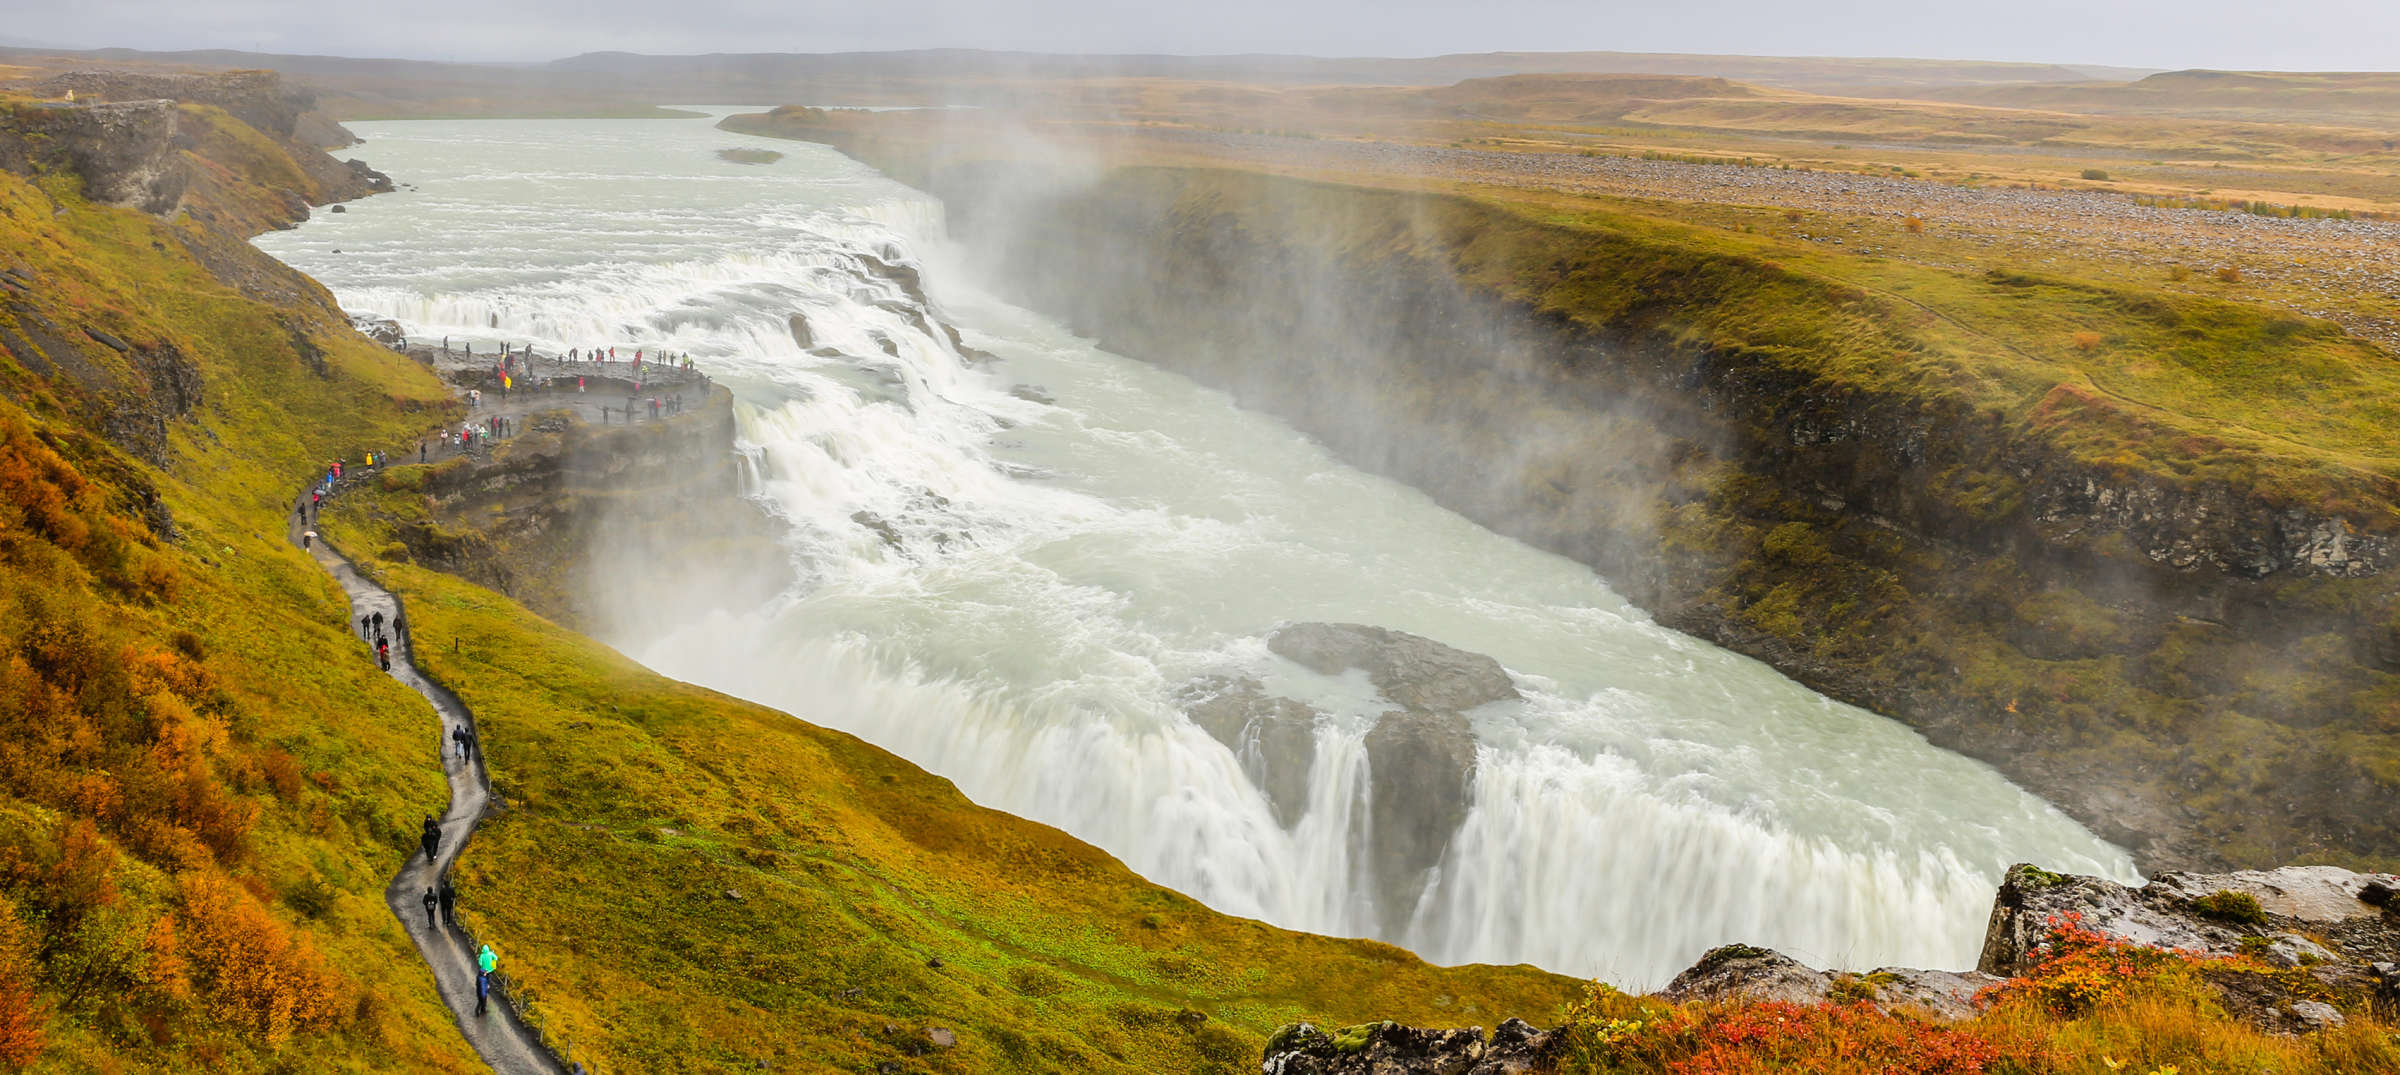 Gullfoss-Autumn